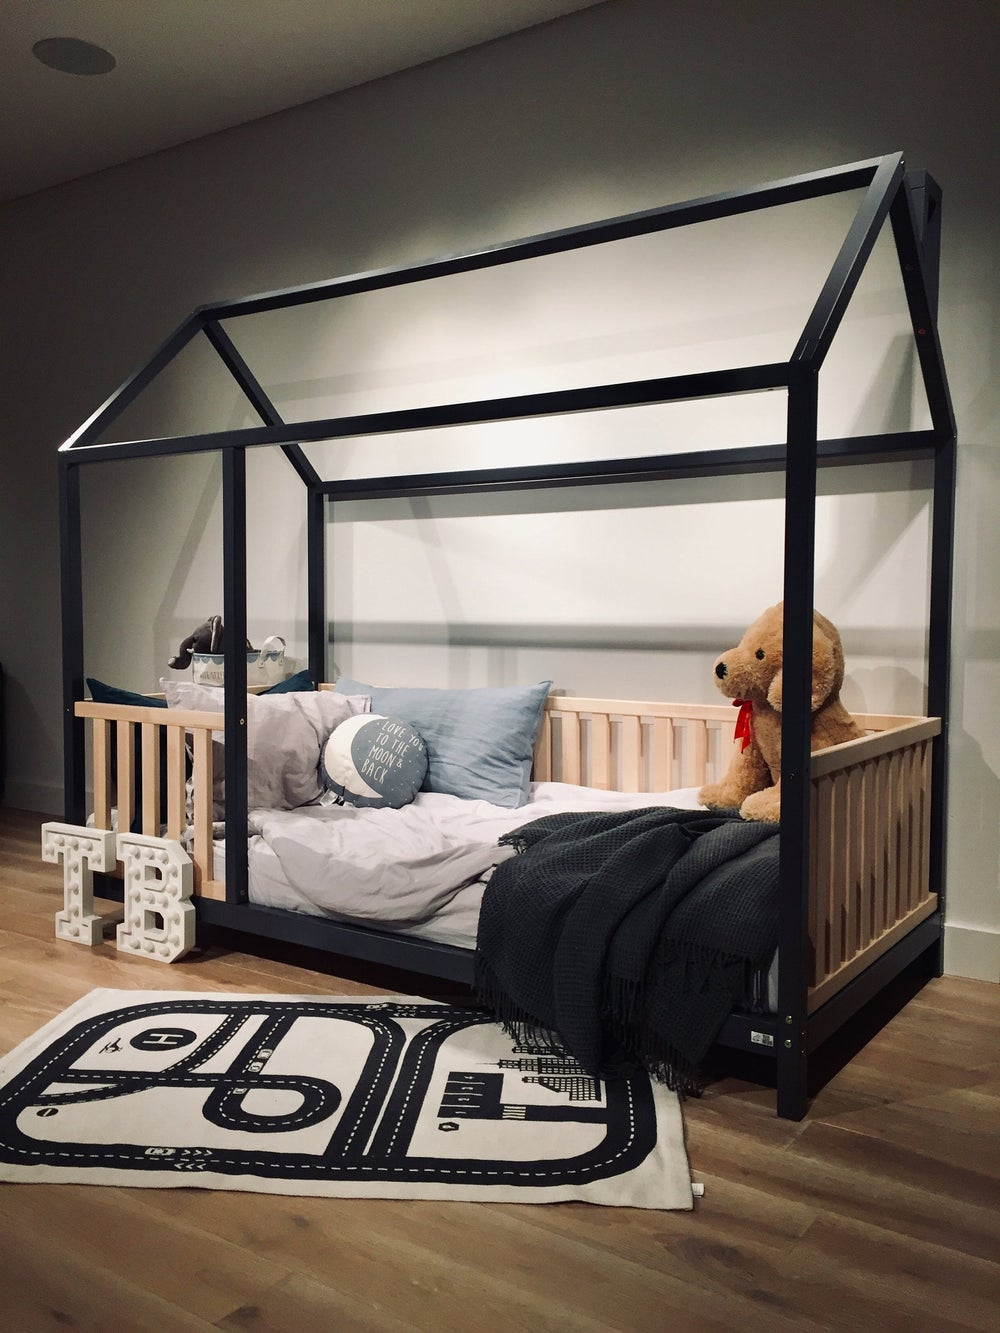 """QUEEN Size Toddler bed 60x80"""" with bed rails Teo Beds FREE' SHIPPING"""